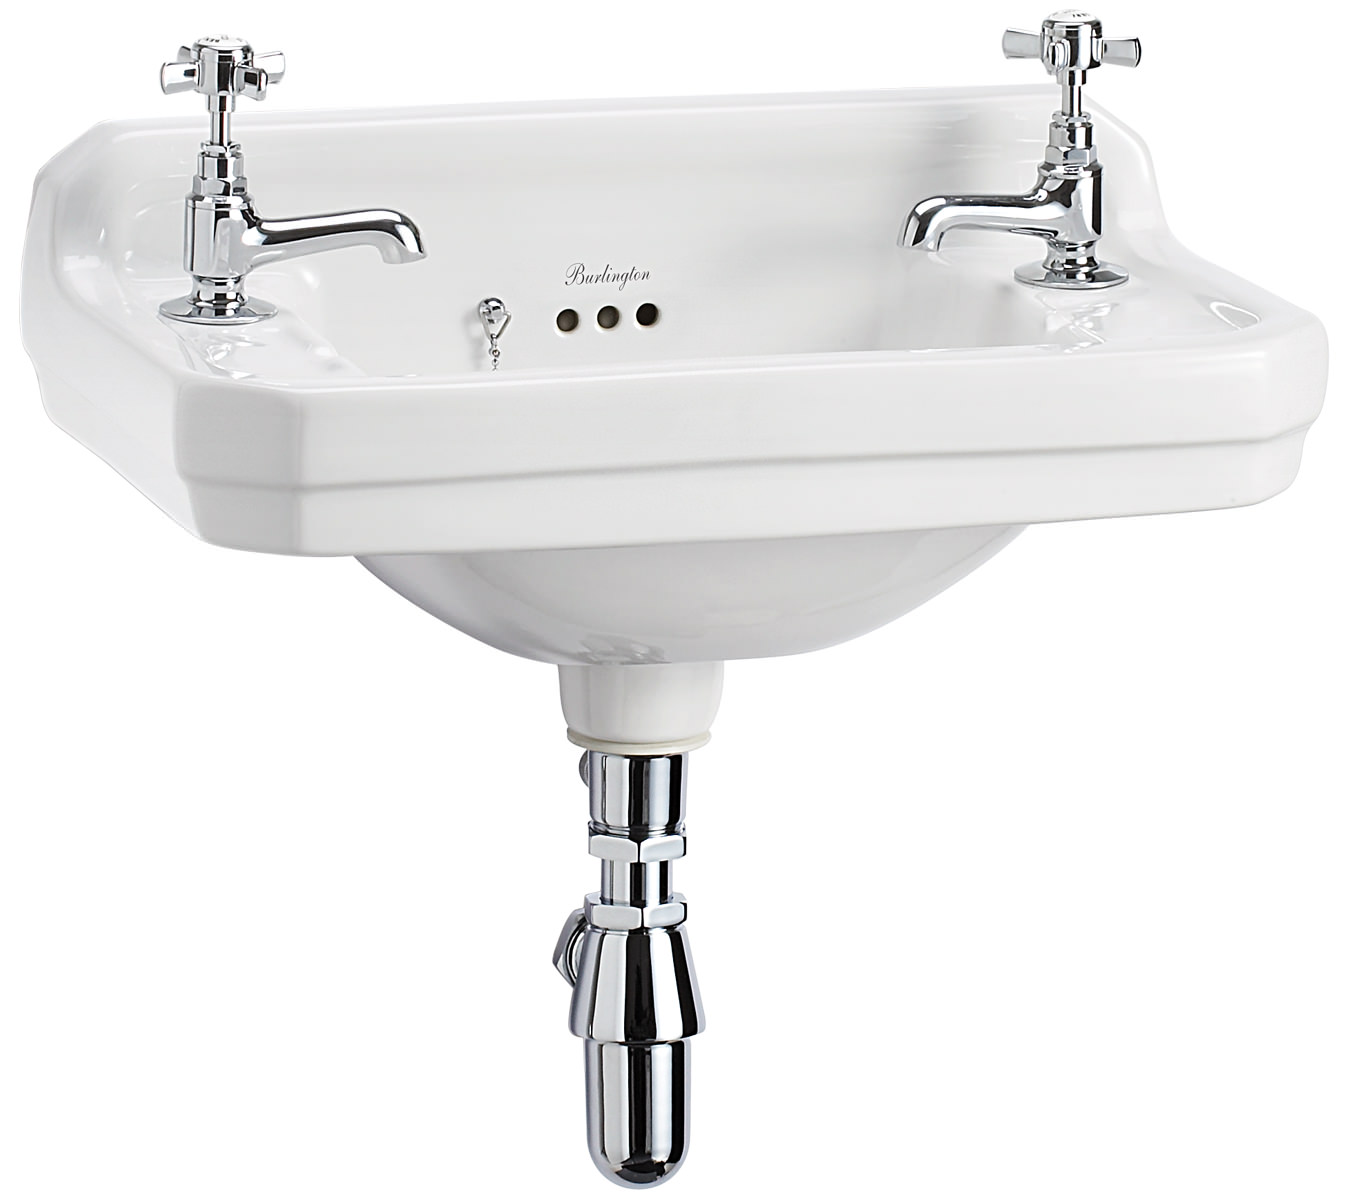 Burlington Corner Sink : Burlington Edwardian Wall Mounted 510mm Cloakroom Basin - B8